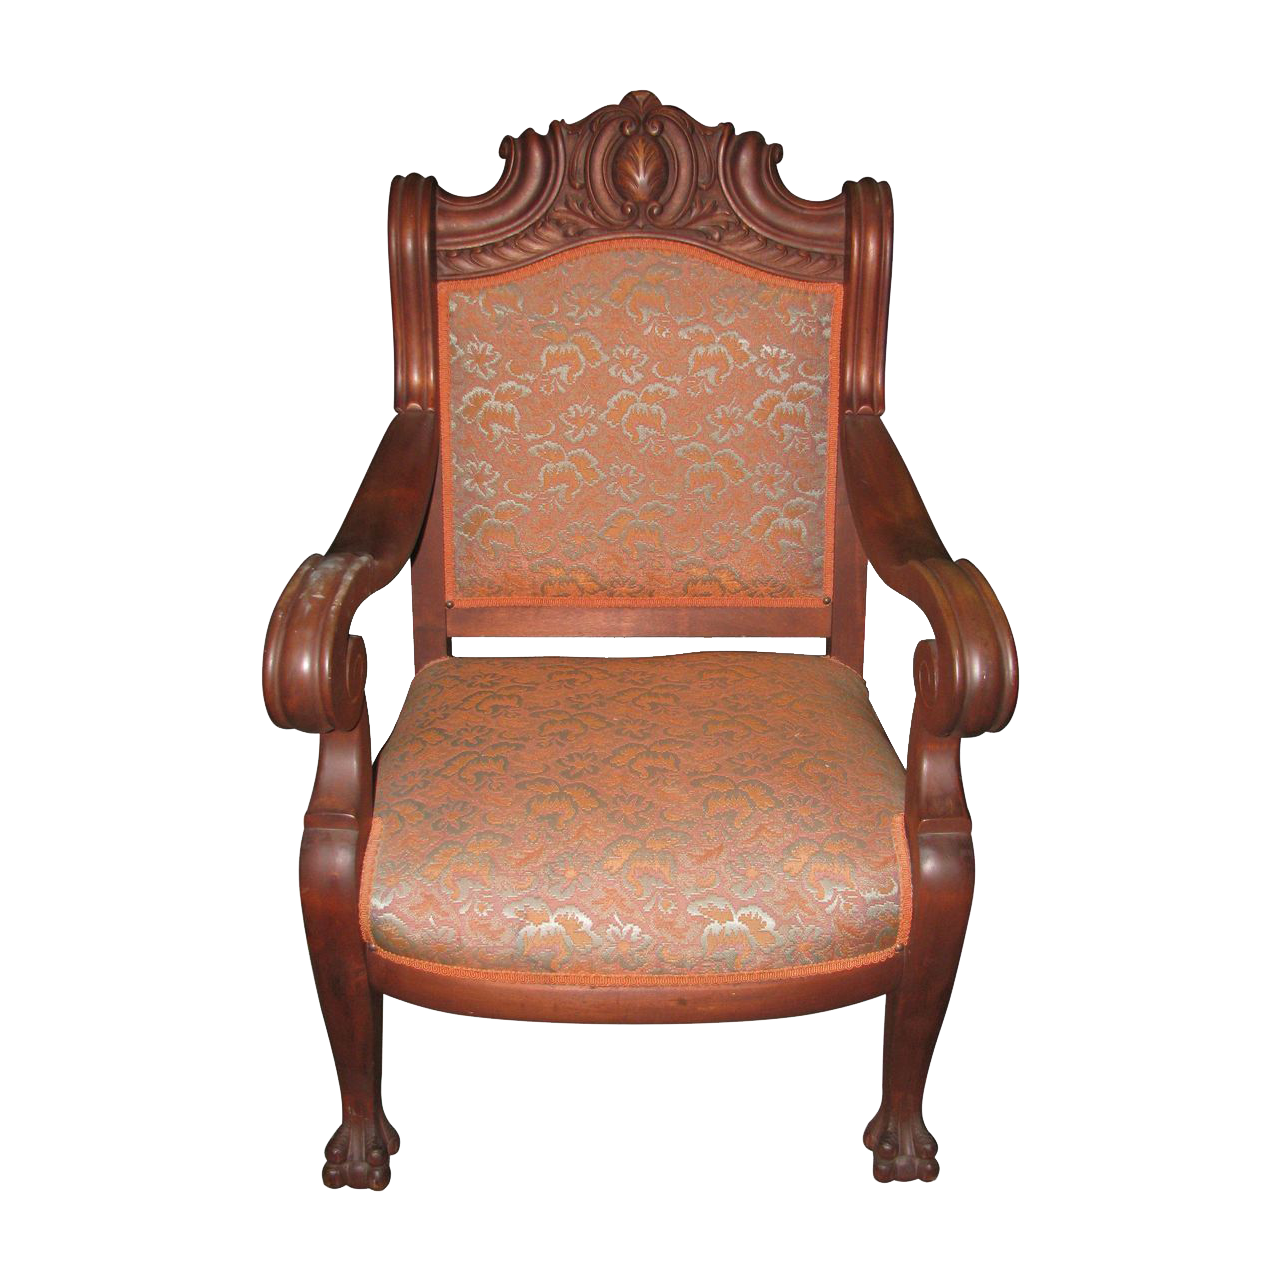 Late 1800's carved wood chair with claw feet